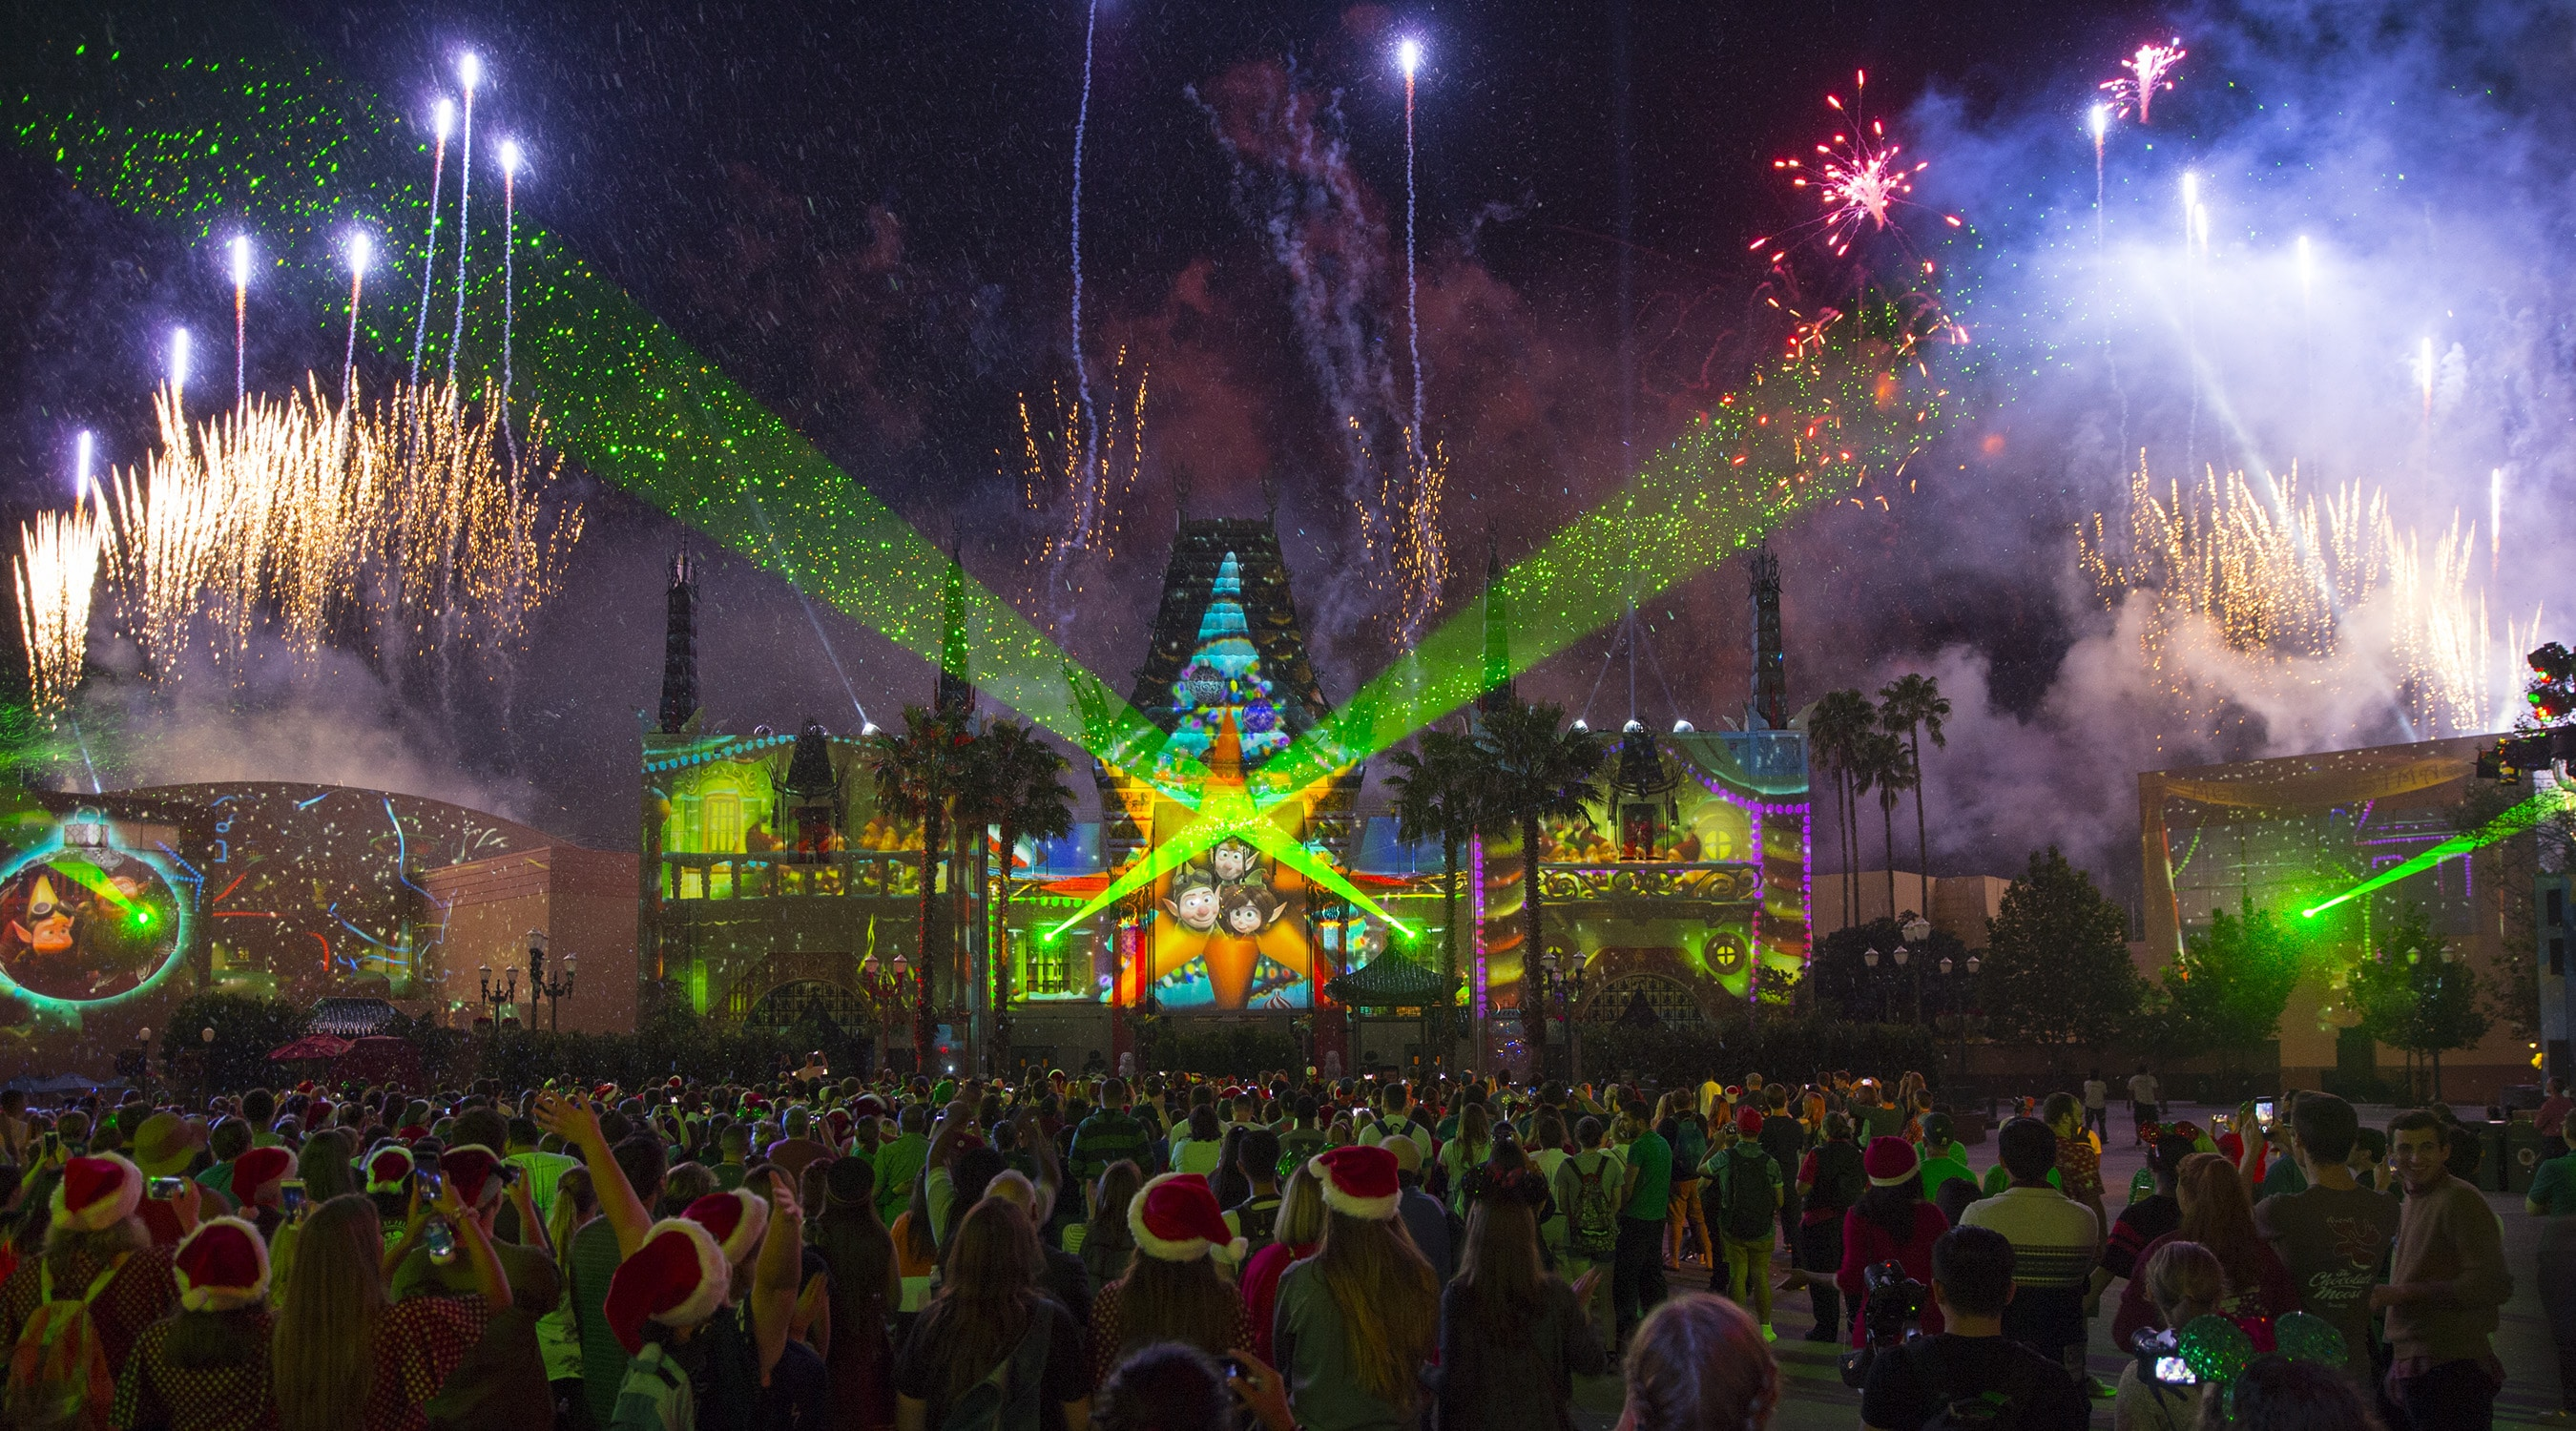 Jingle Bell, Jingle BAM at Disney's Hollywood Studios Orlando